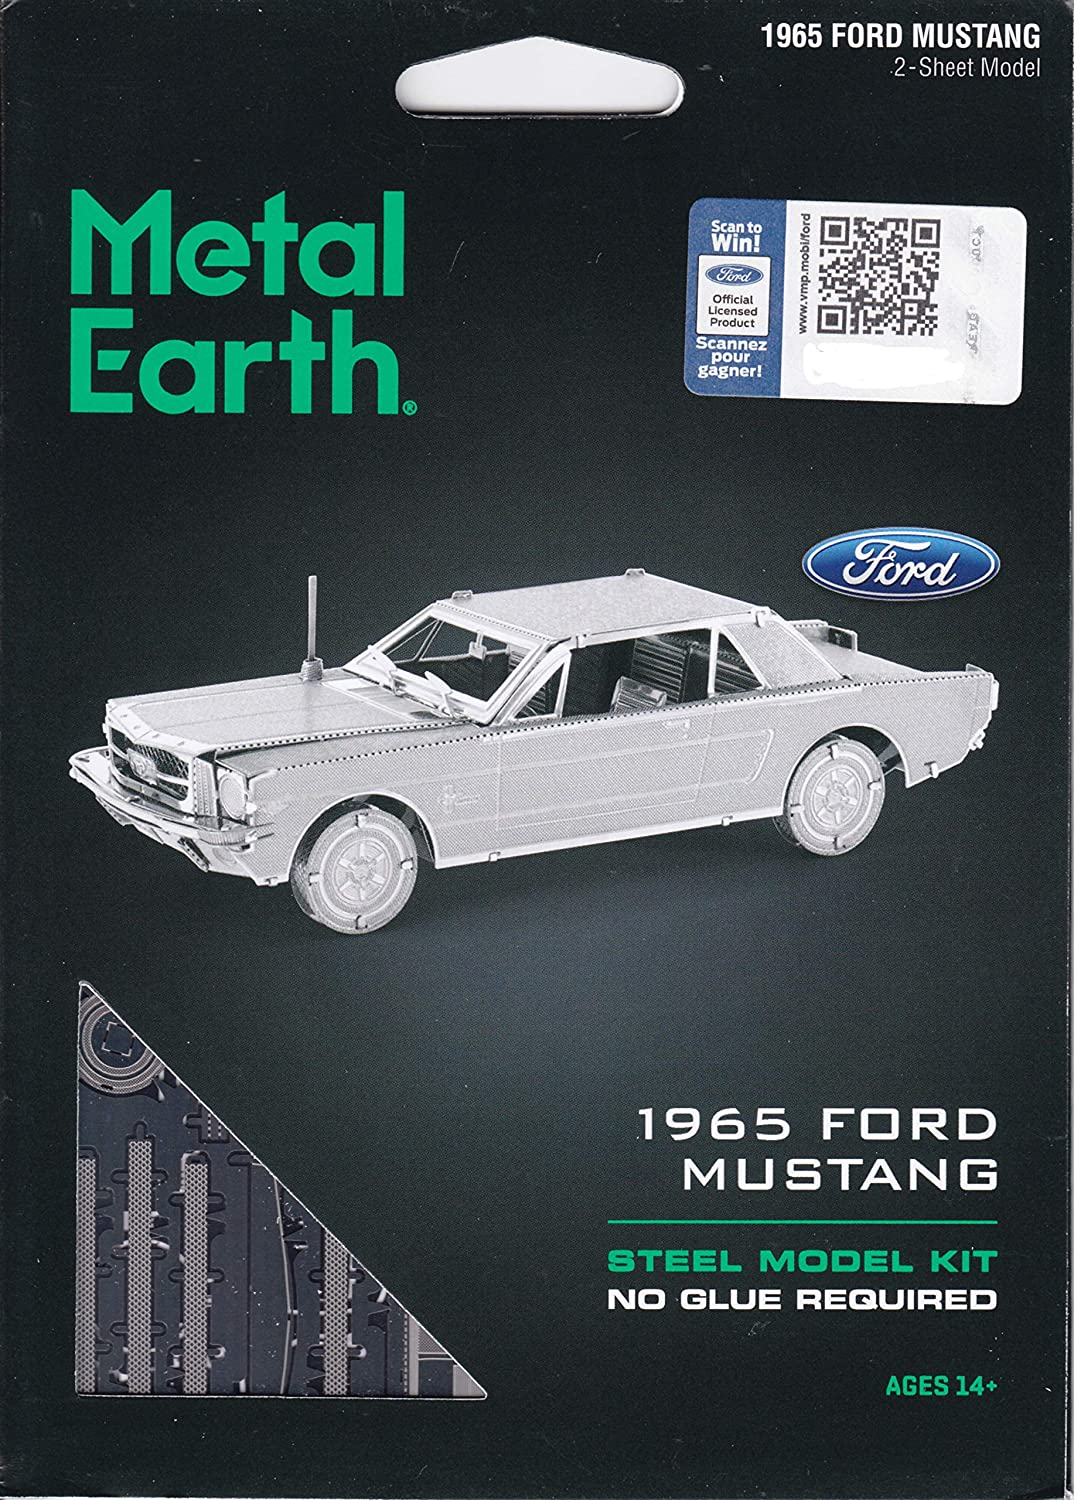 Ford 1965 Mustang Coupe 50 Teile 3D-Metallbausatz Metal Earth 1056